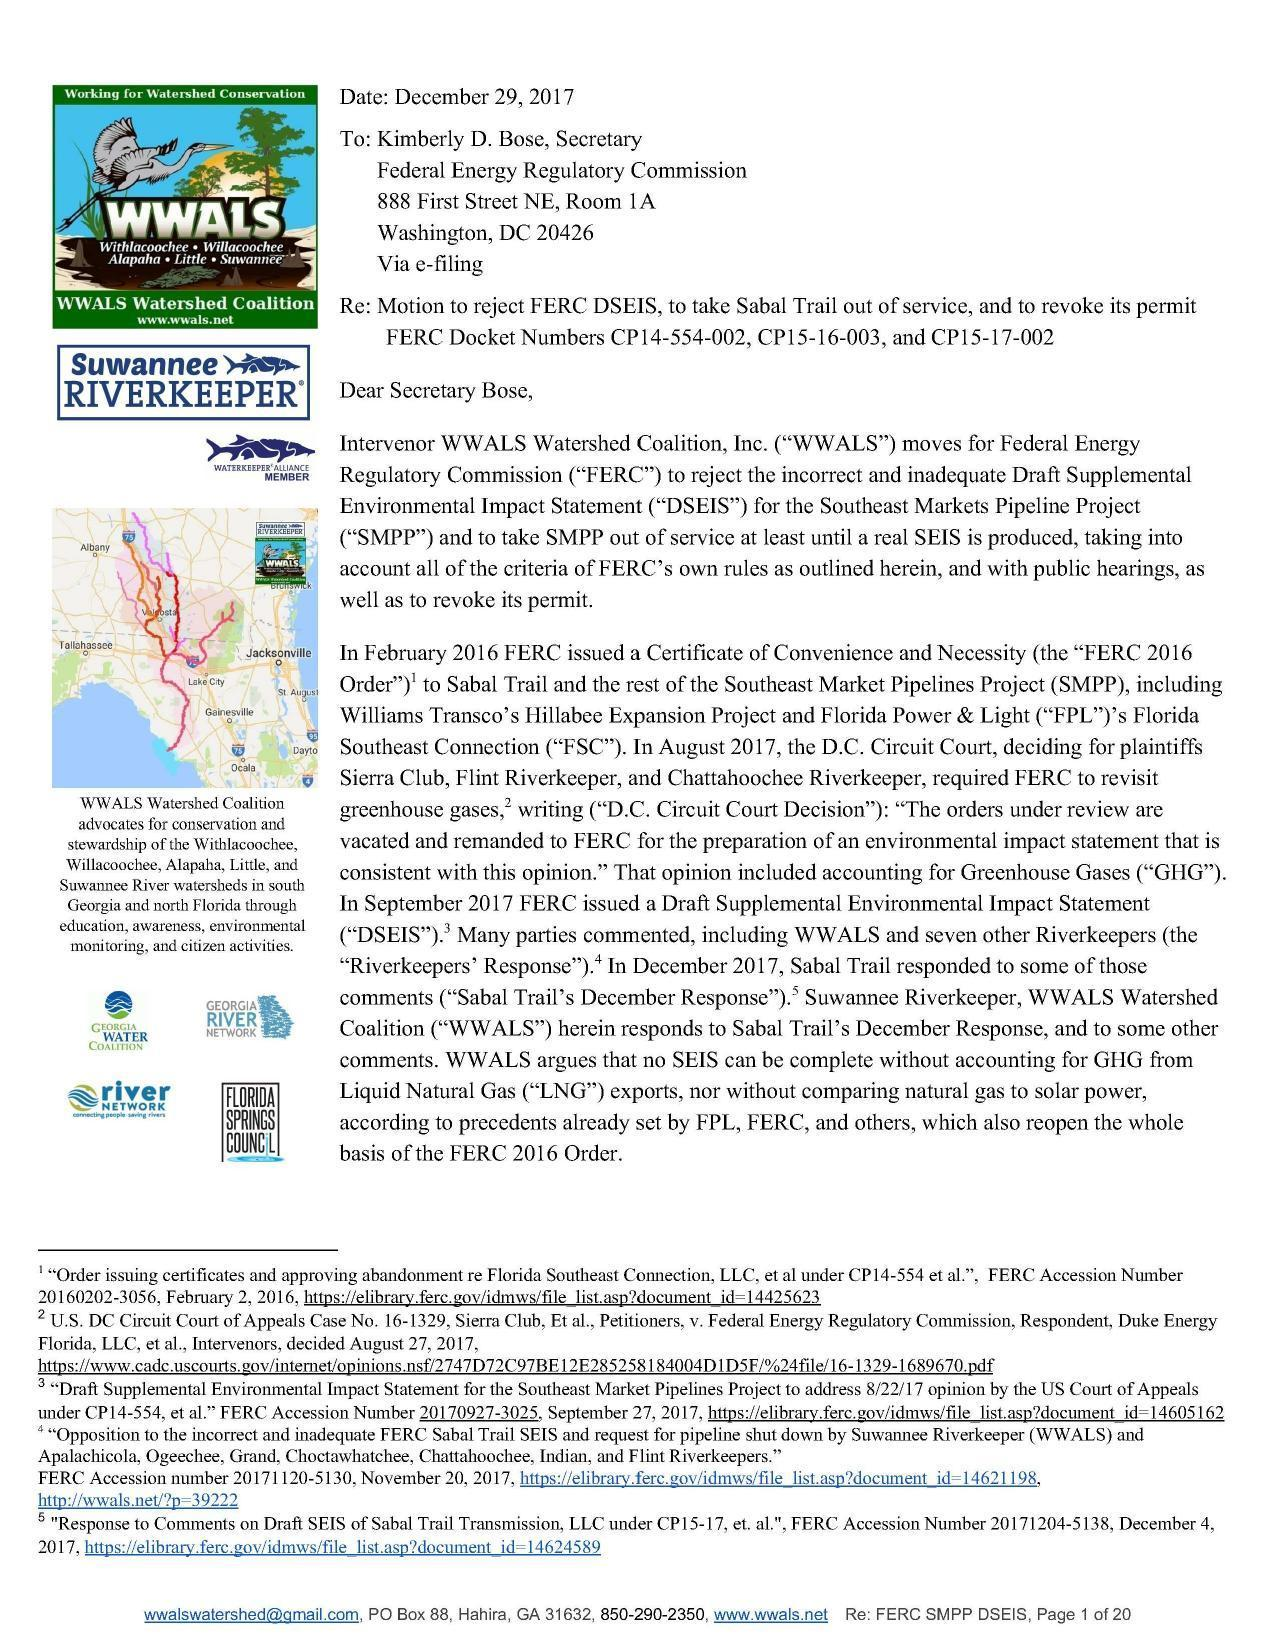 1275x1651 reopen the whole basis of the FERC 2016 Order, Filing, in Motion to reject FERC DSEIS, to take Sabal Trail out of service, and to revoke its permit, by John S. Quarterman, for WWALS.net, 9 December 2017